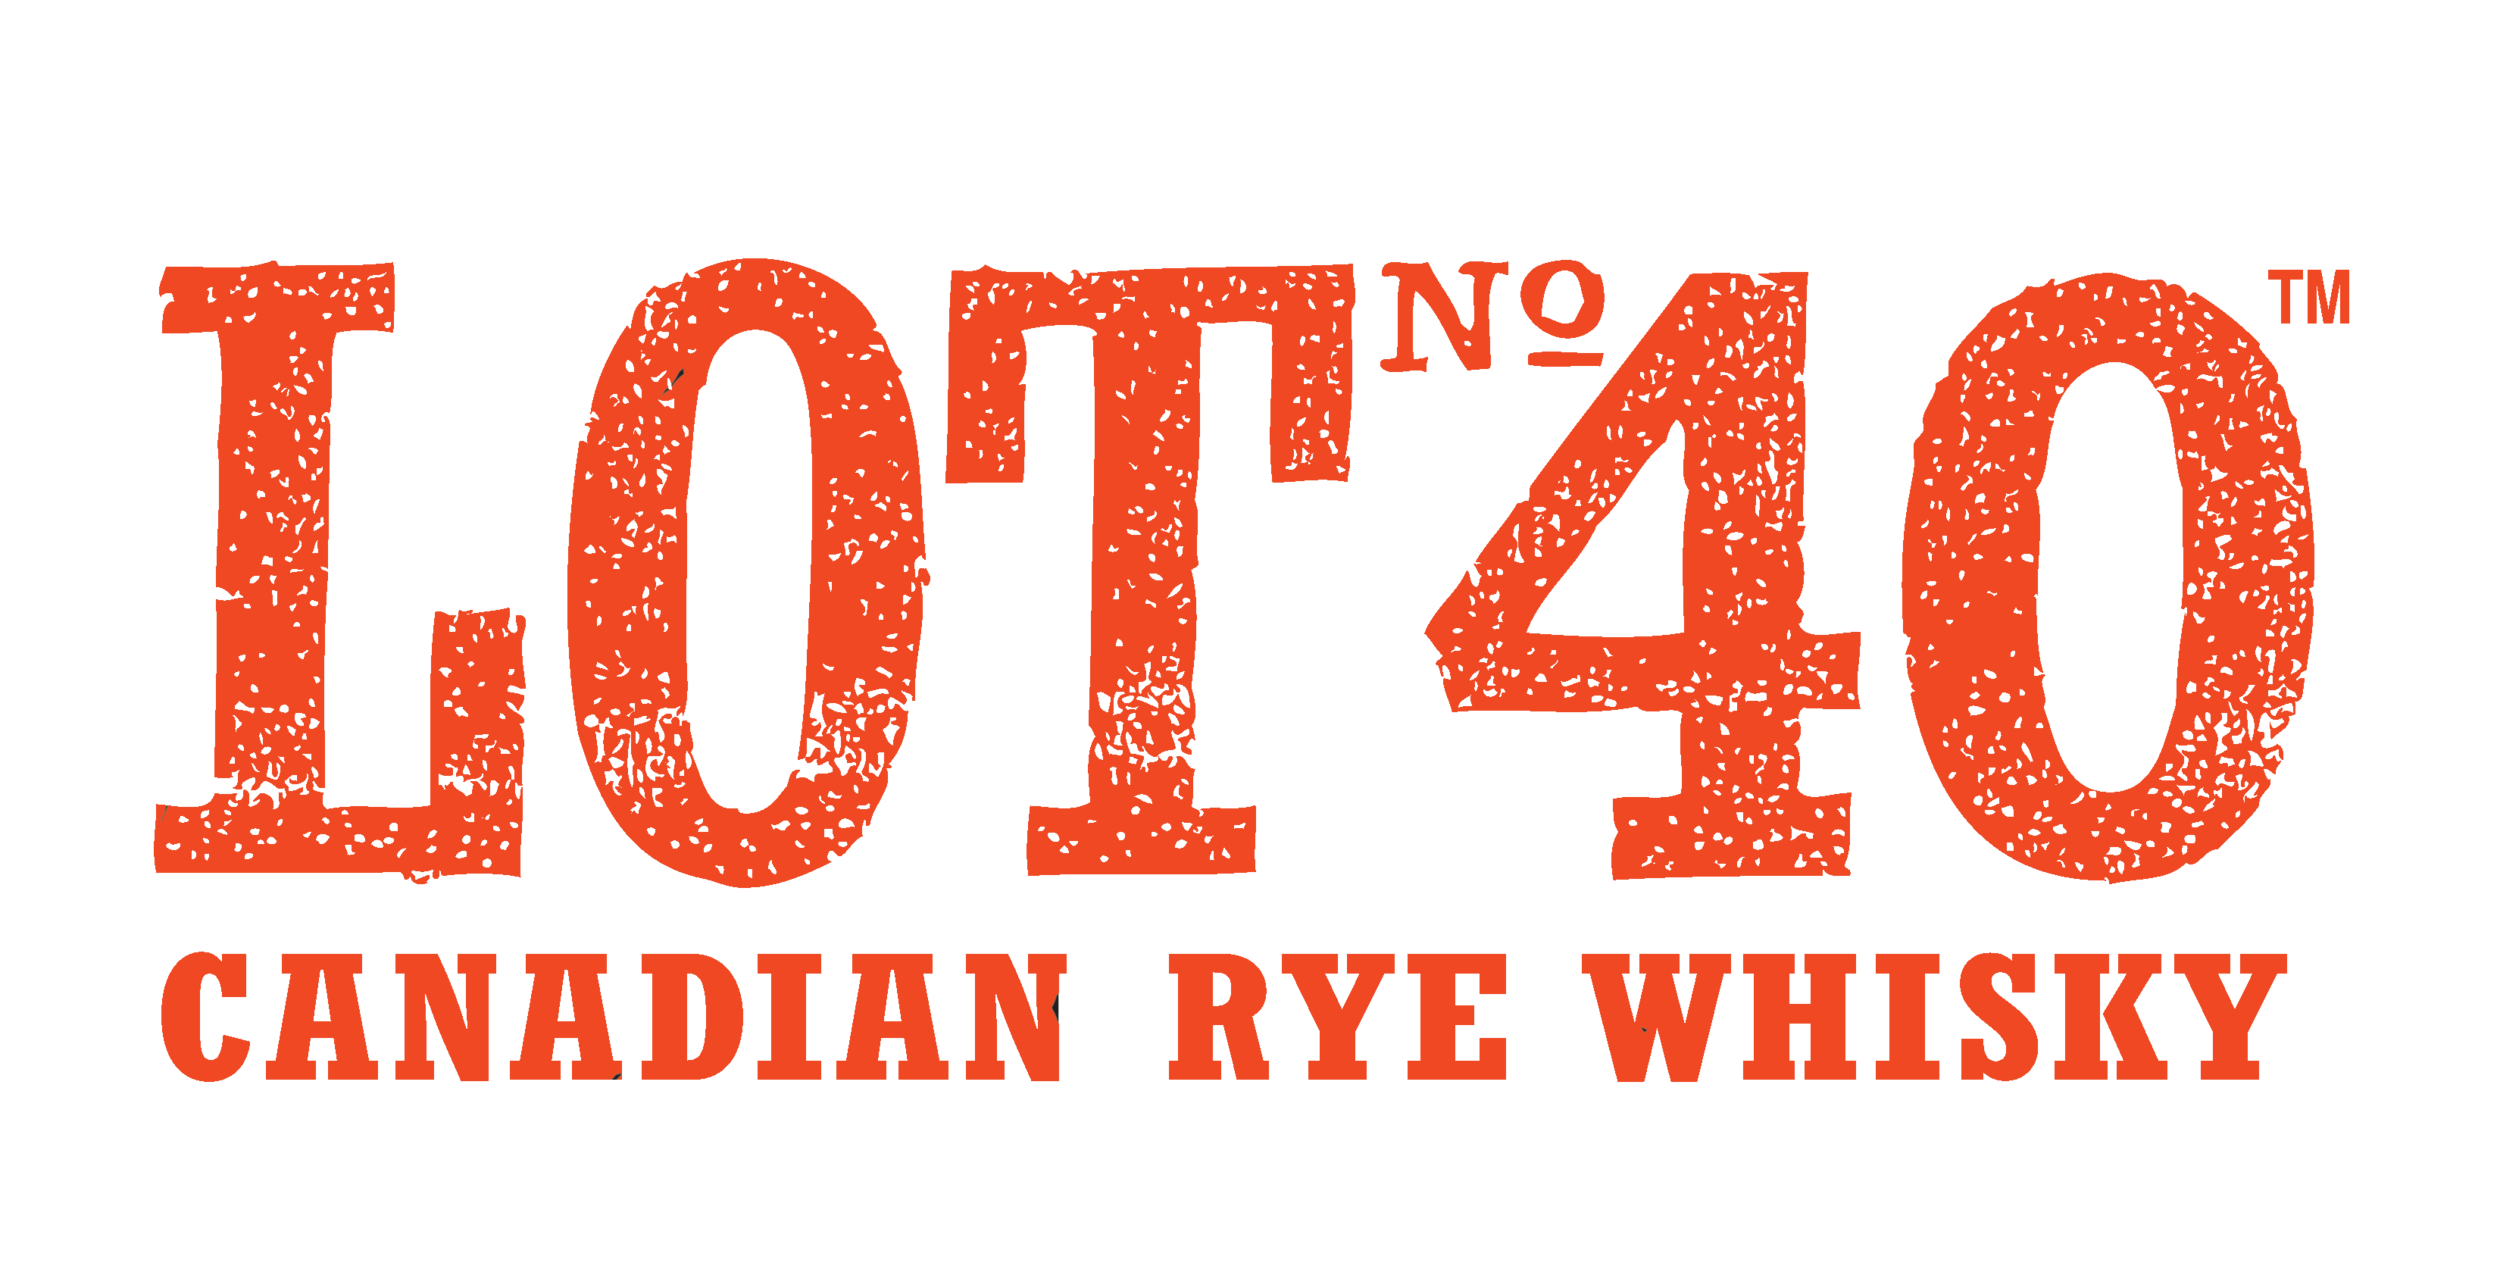 Lot40-RyeWhisky-Logo-™.png